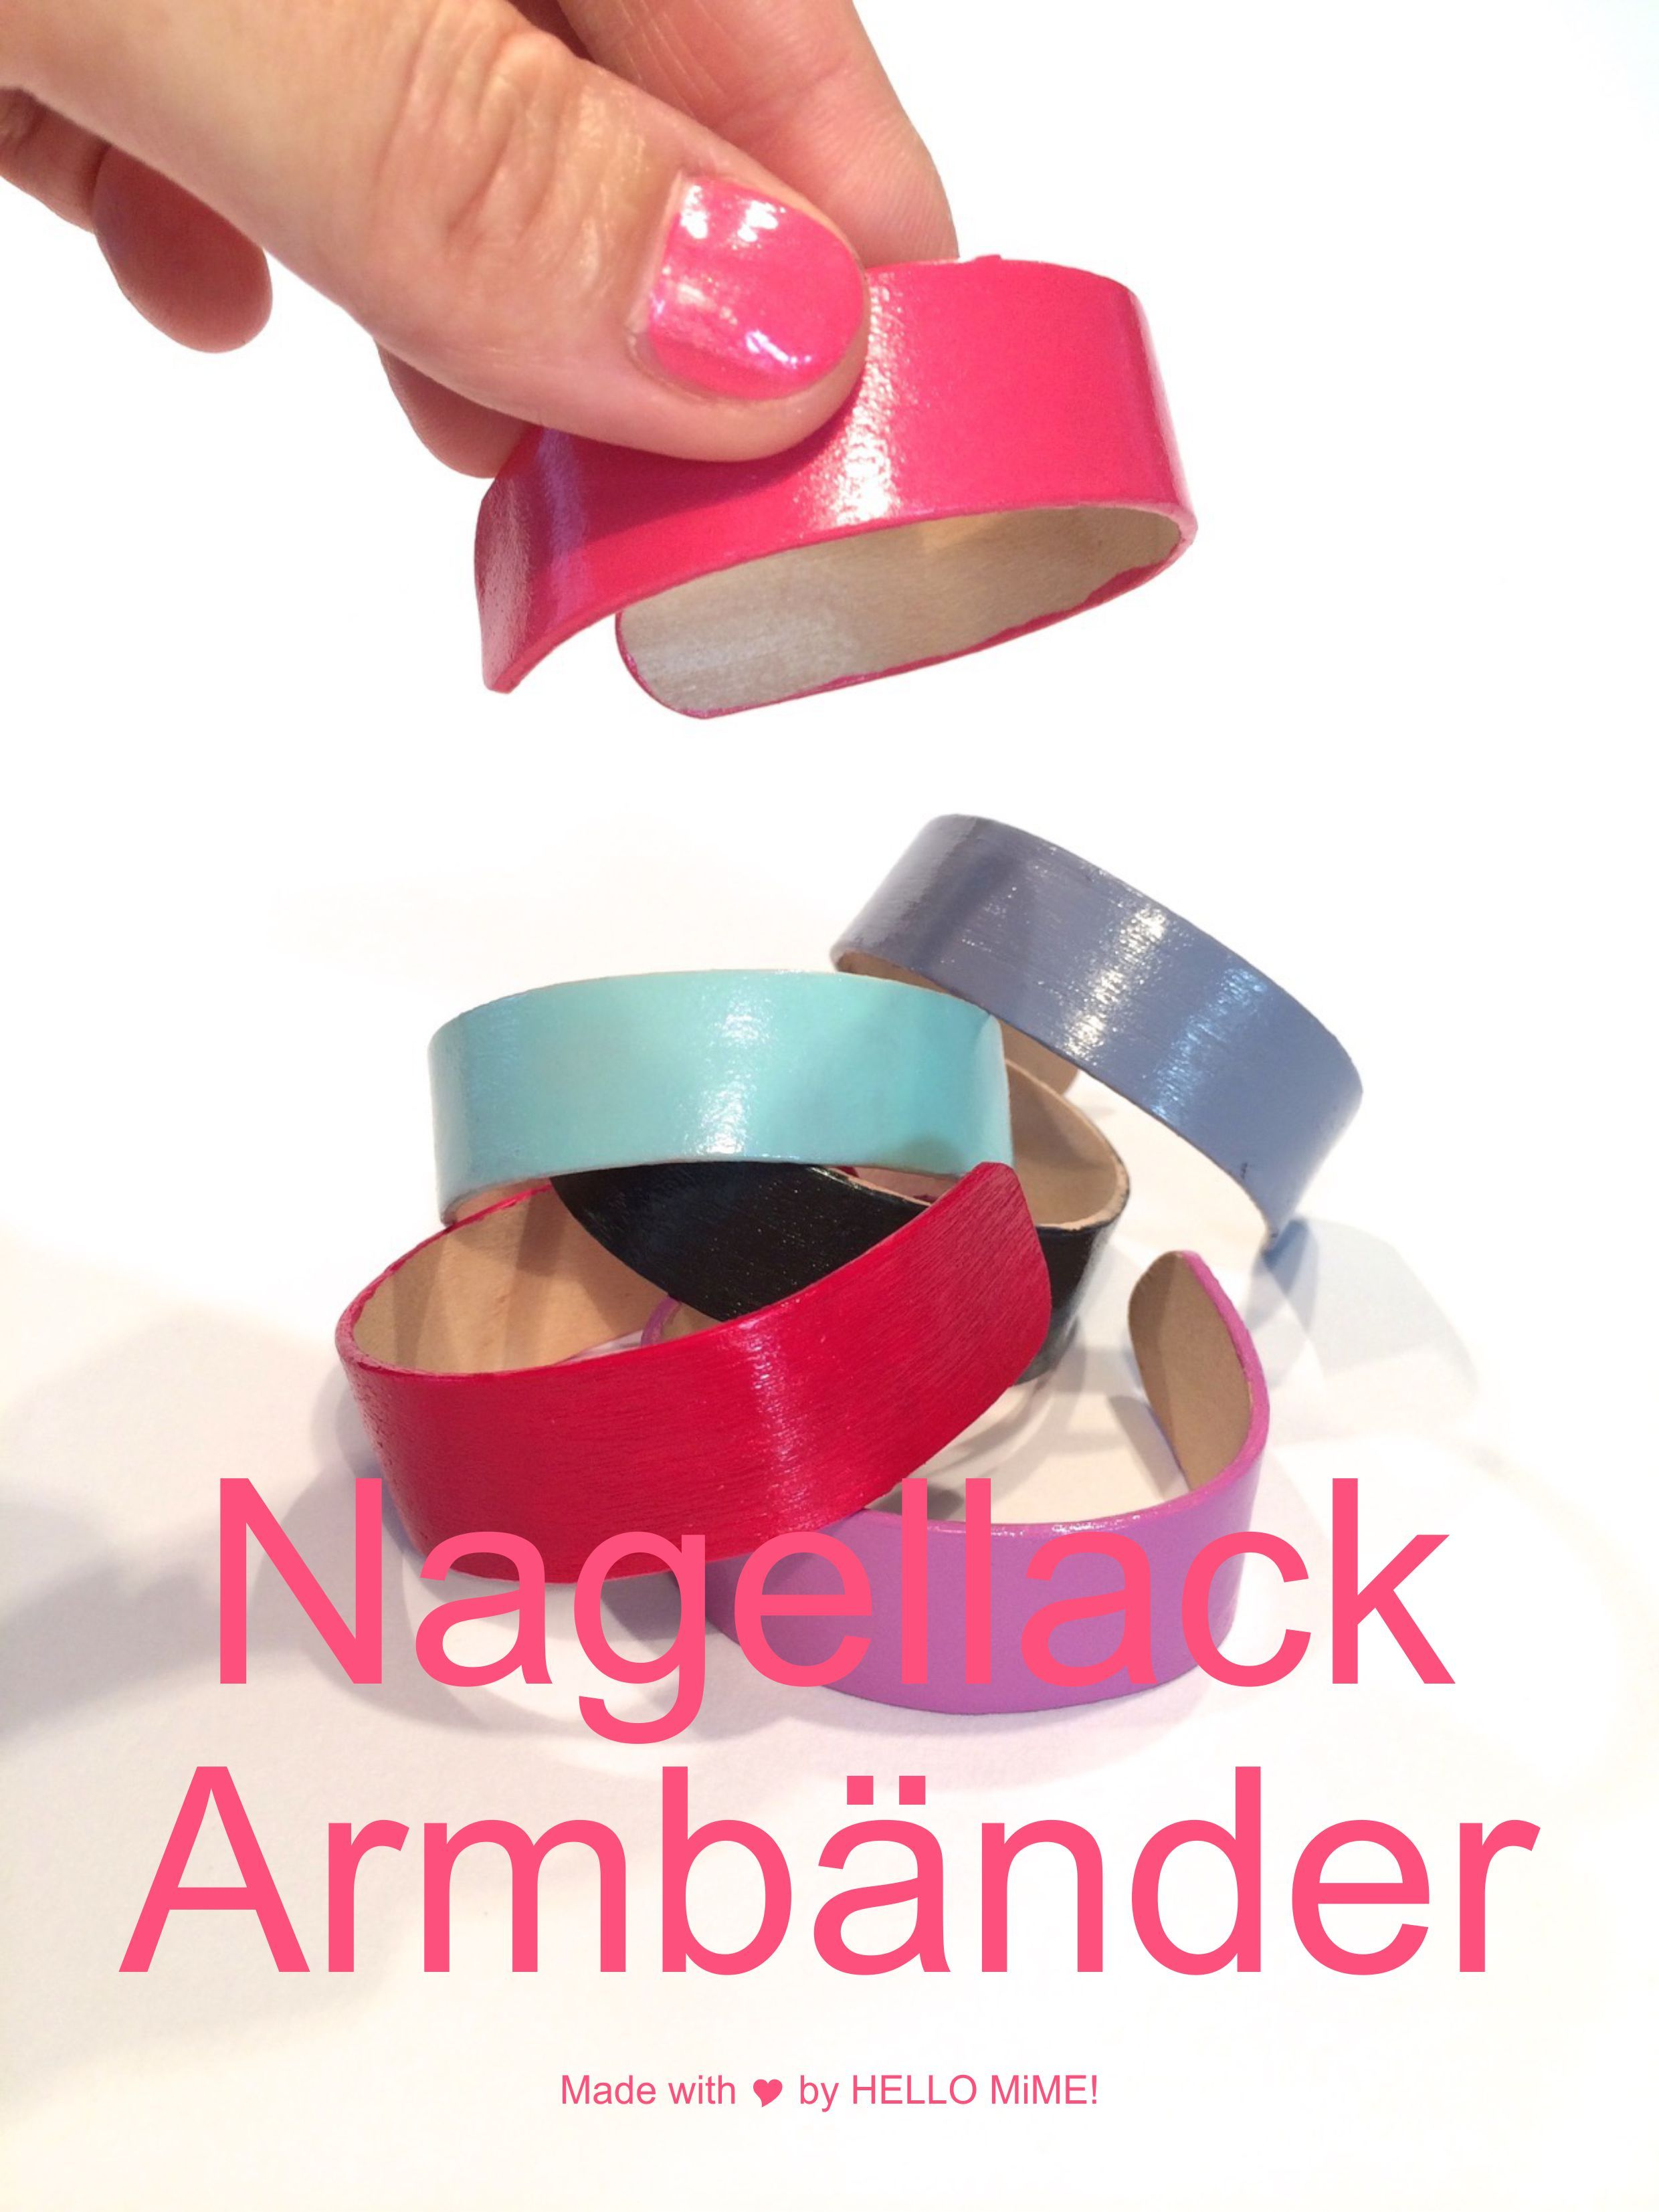 armband nagellack diy diy accessoires holzst bchen. Black Bedroom Furniture Sets. Home Design Ideas